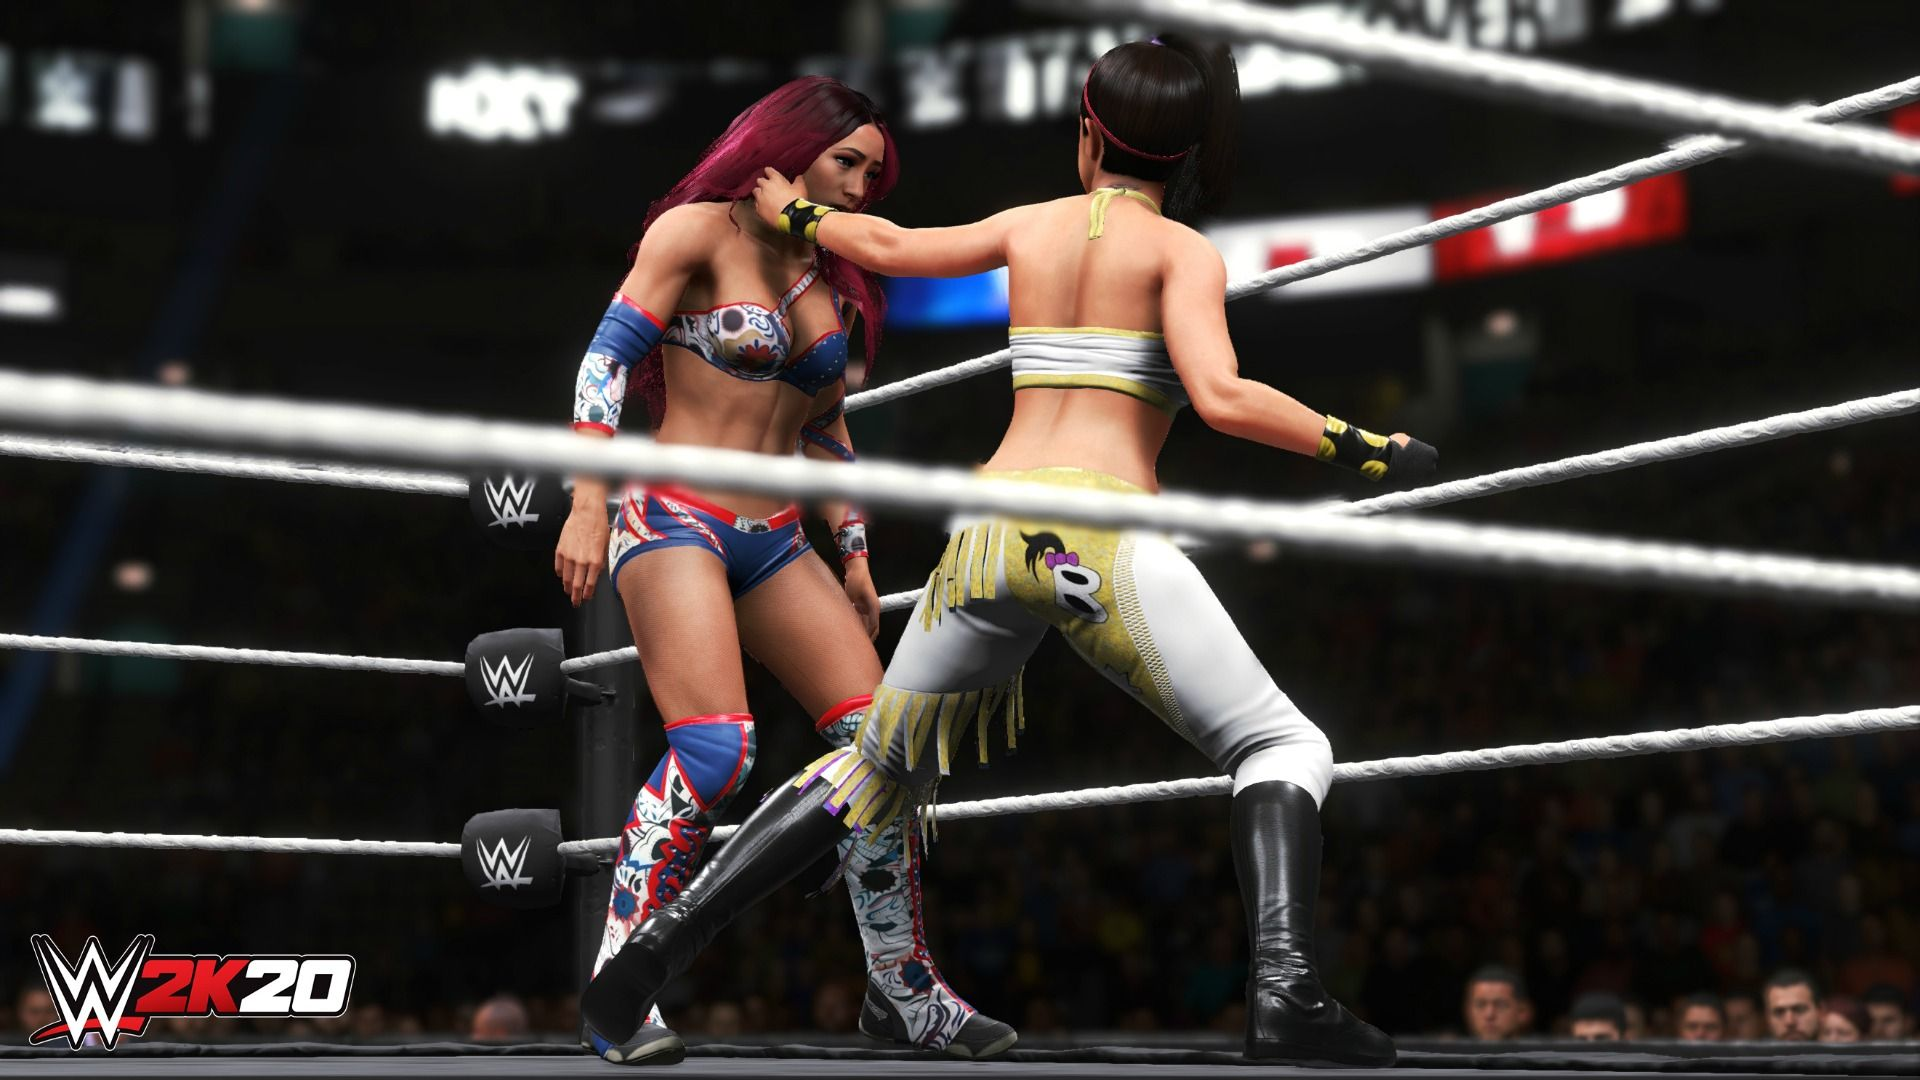 Wwe 2k20 Showcase Tells Story Of Women U2019s Evolution